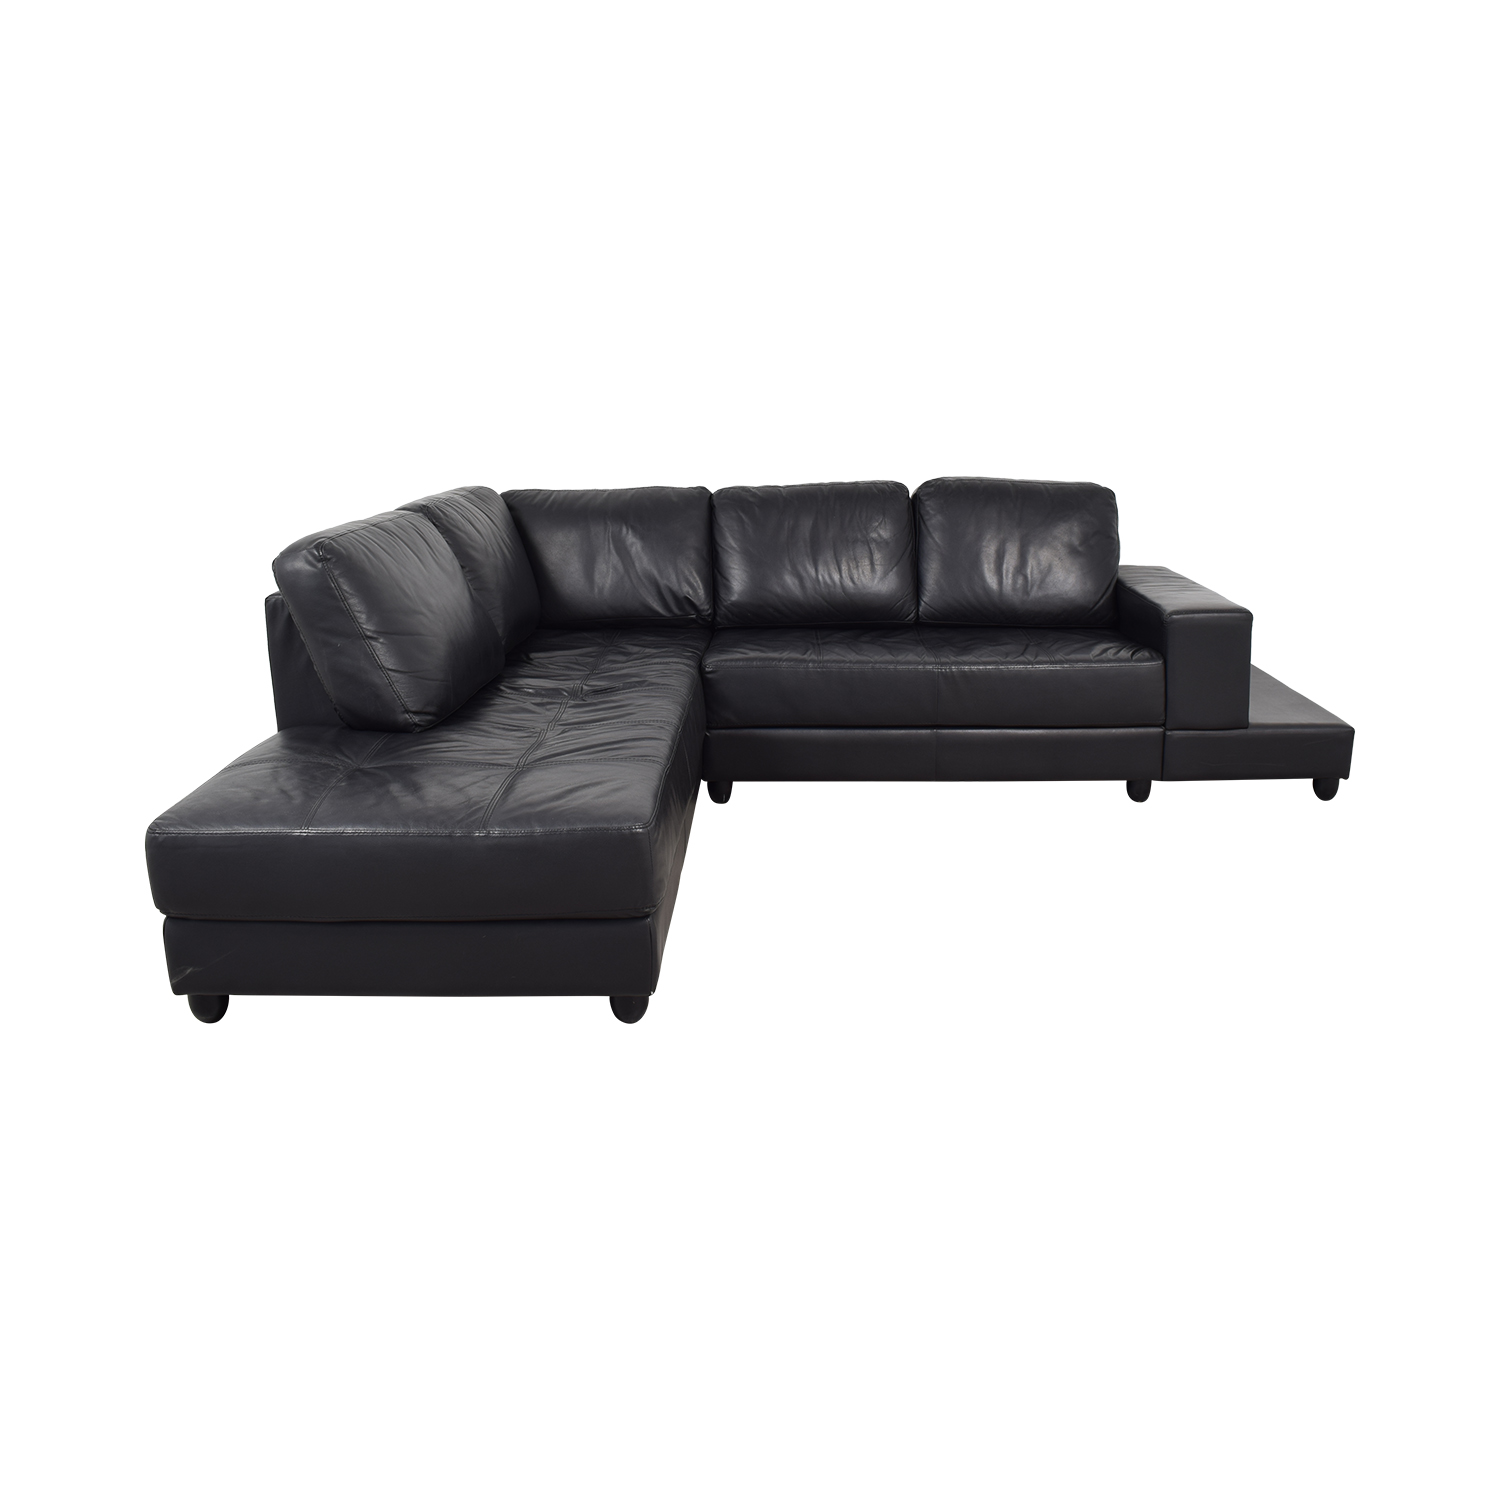 Coaster Coaster Black Sectional for sale